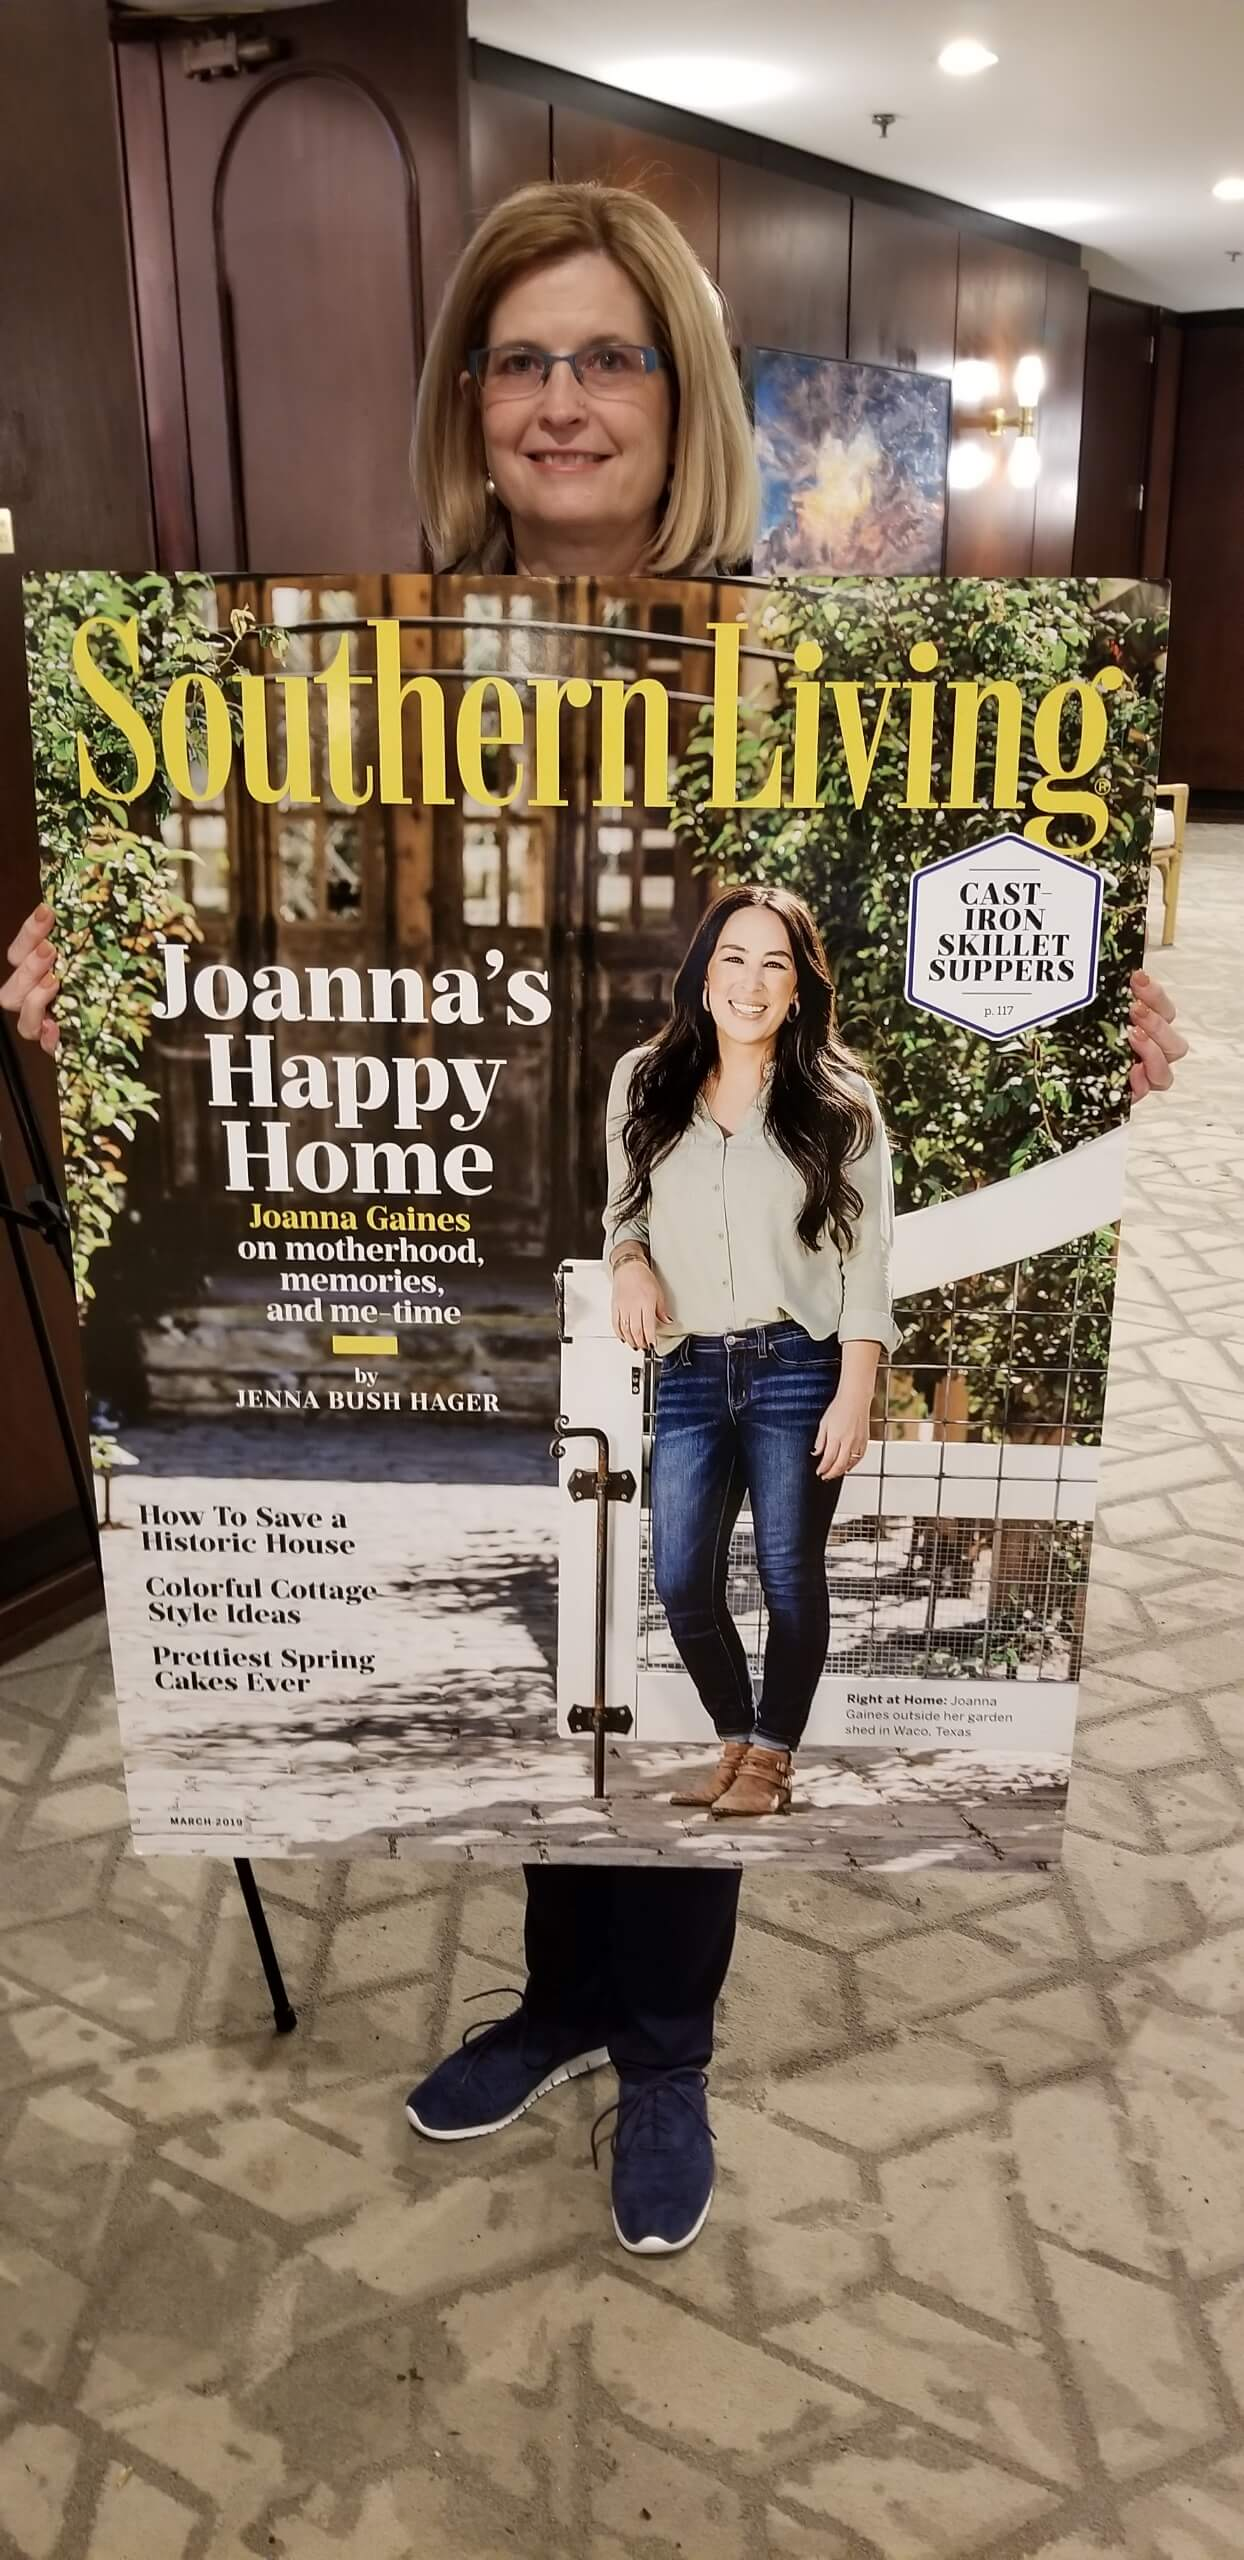 Yvonne Cummins holding front cover of Southern Living Magazine at Southern Living Builder Summit